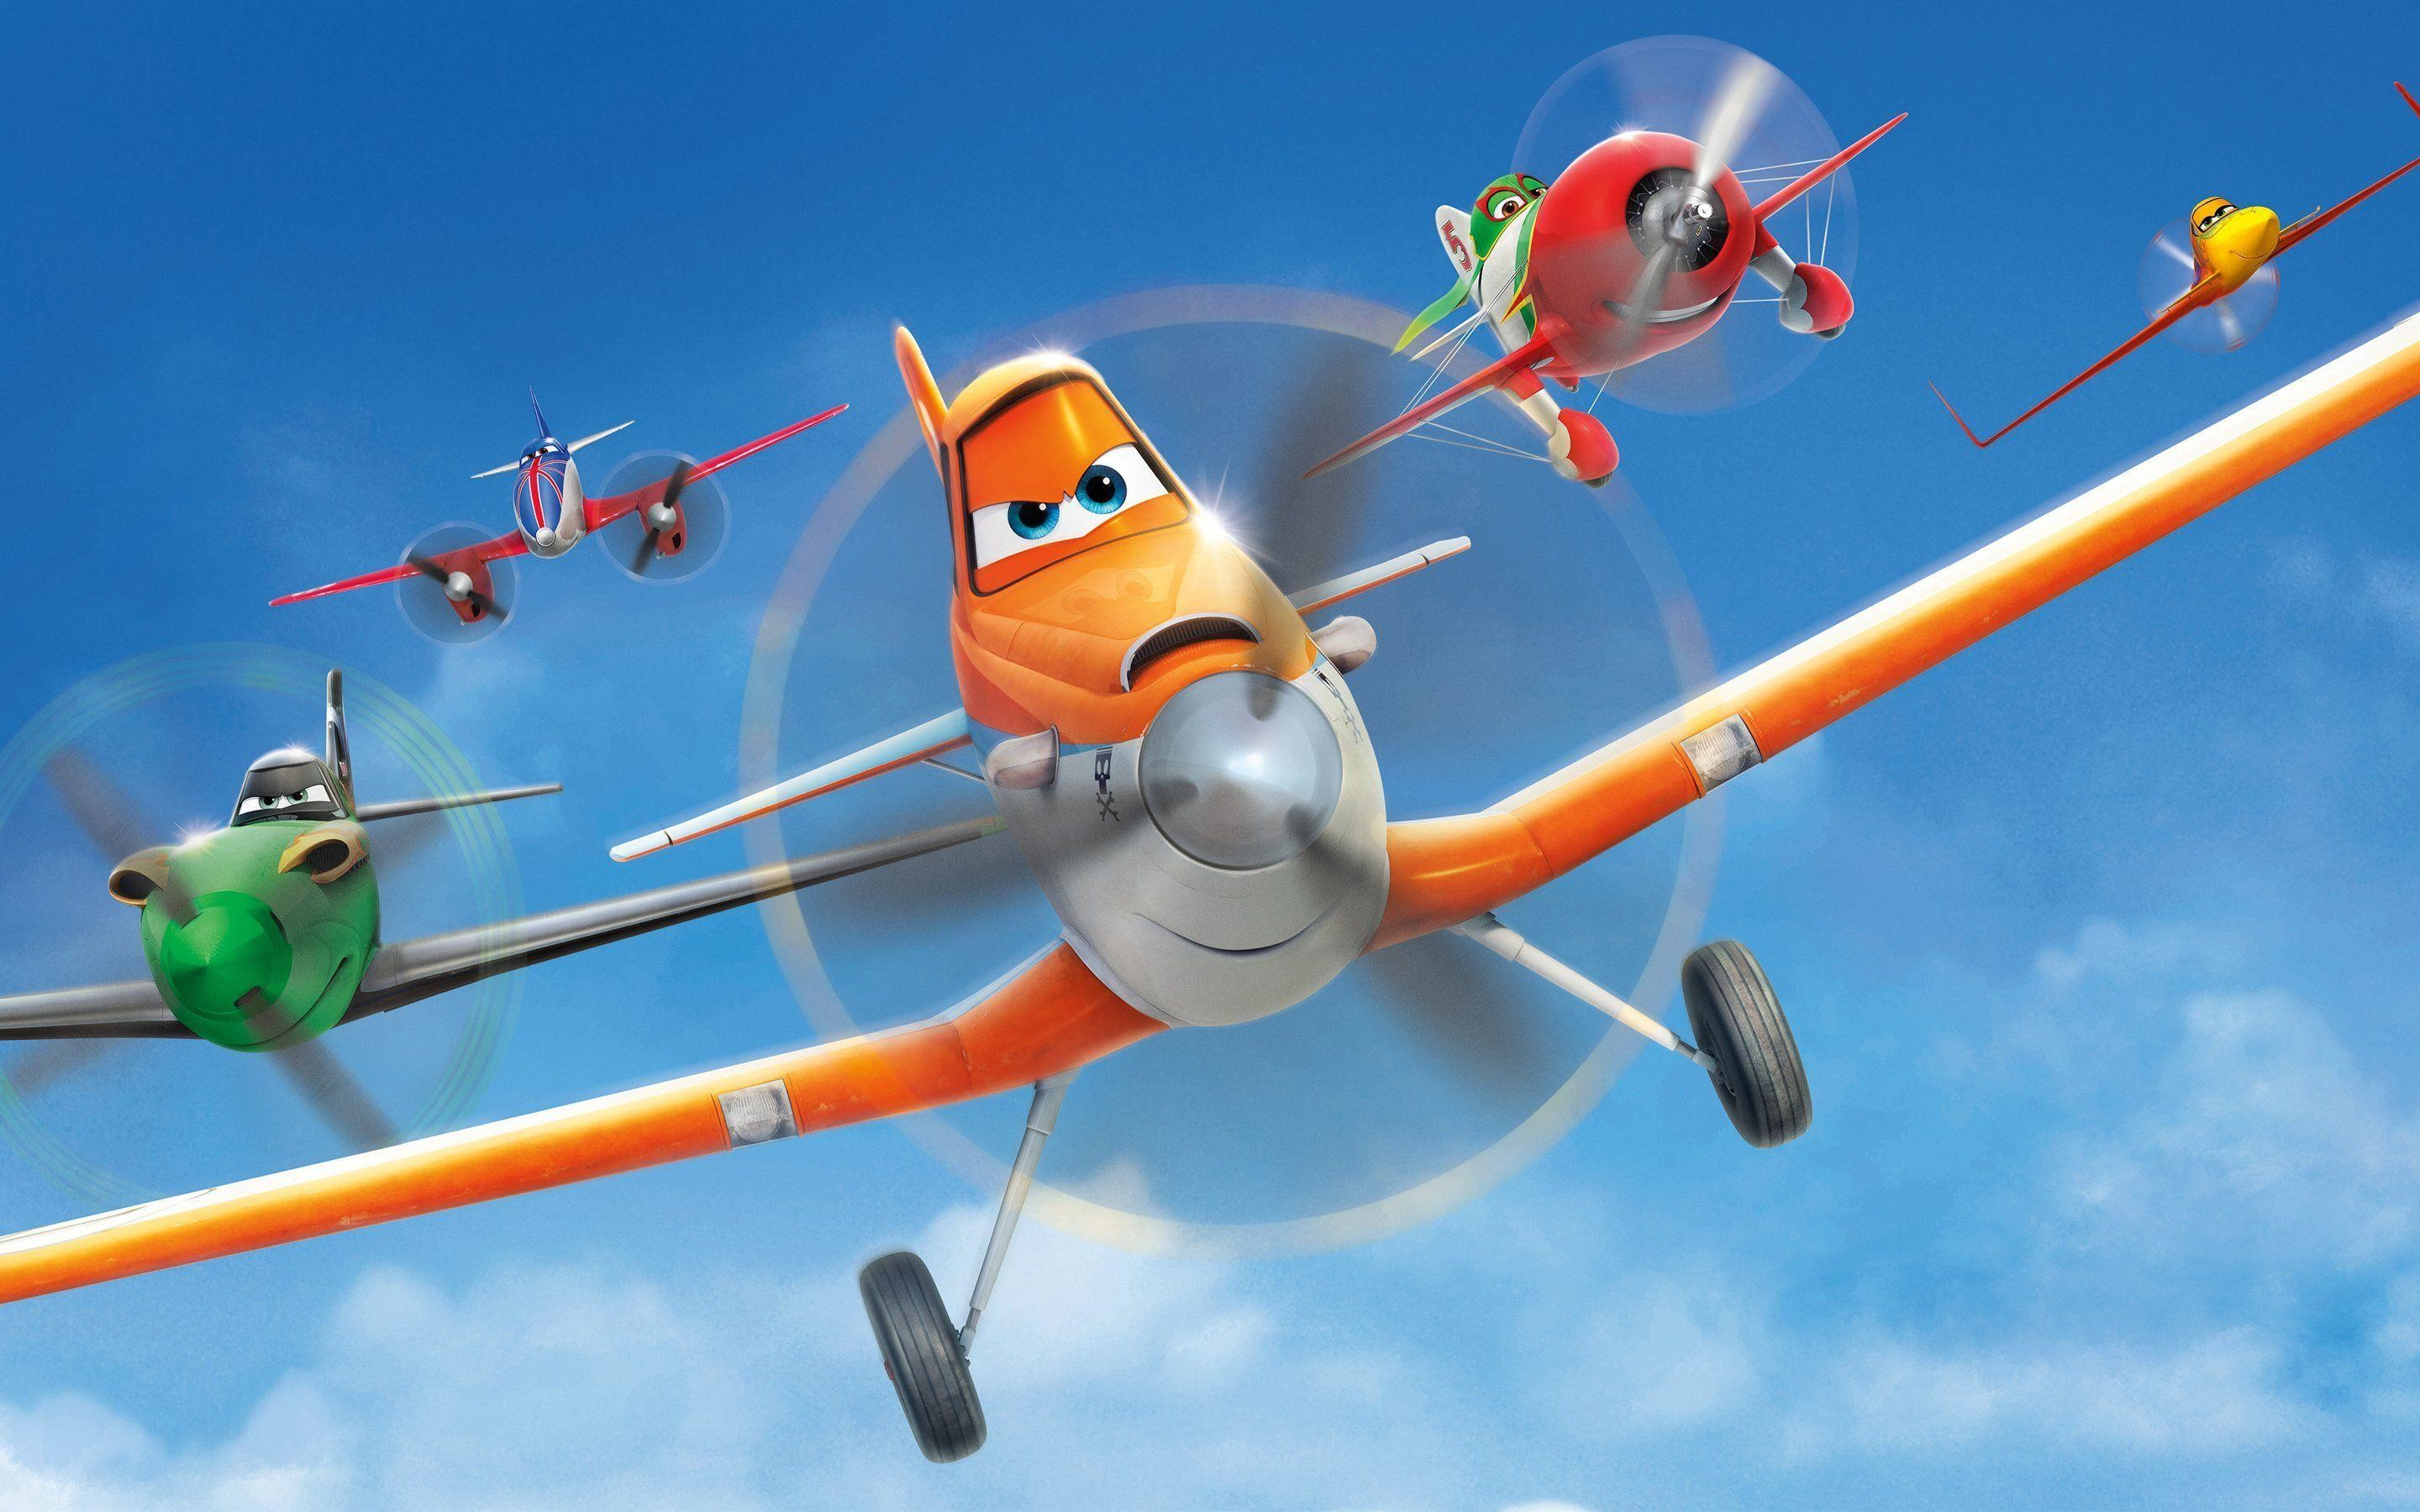 Res: 2880x1800, Disney Planes Wallpapers - HD Wallpapers Inn